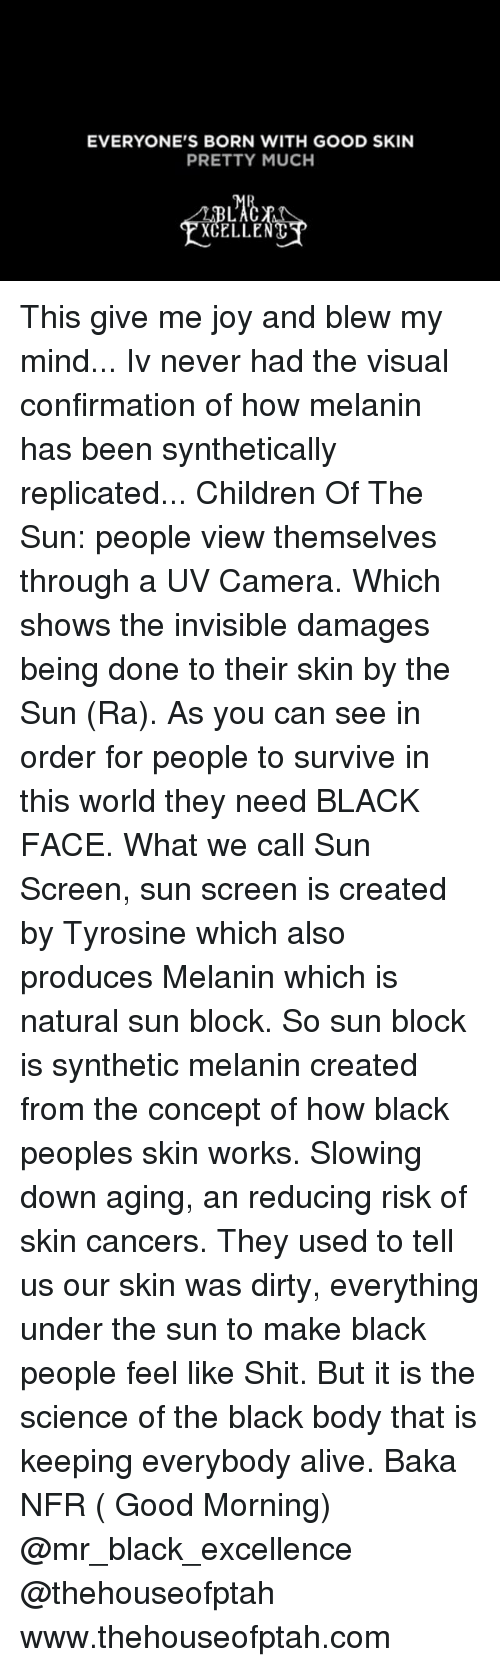 How Much Melanin Is In The Average Black Person